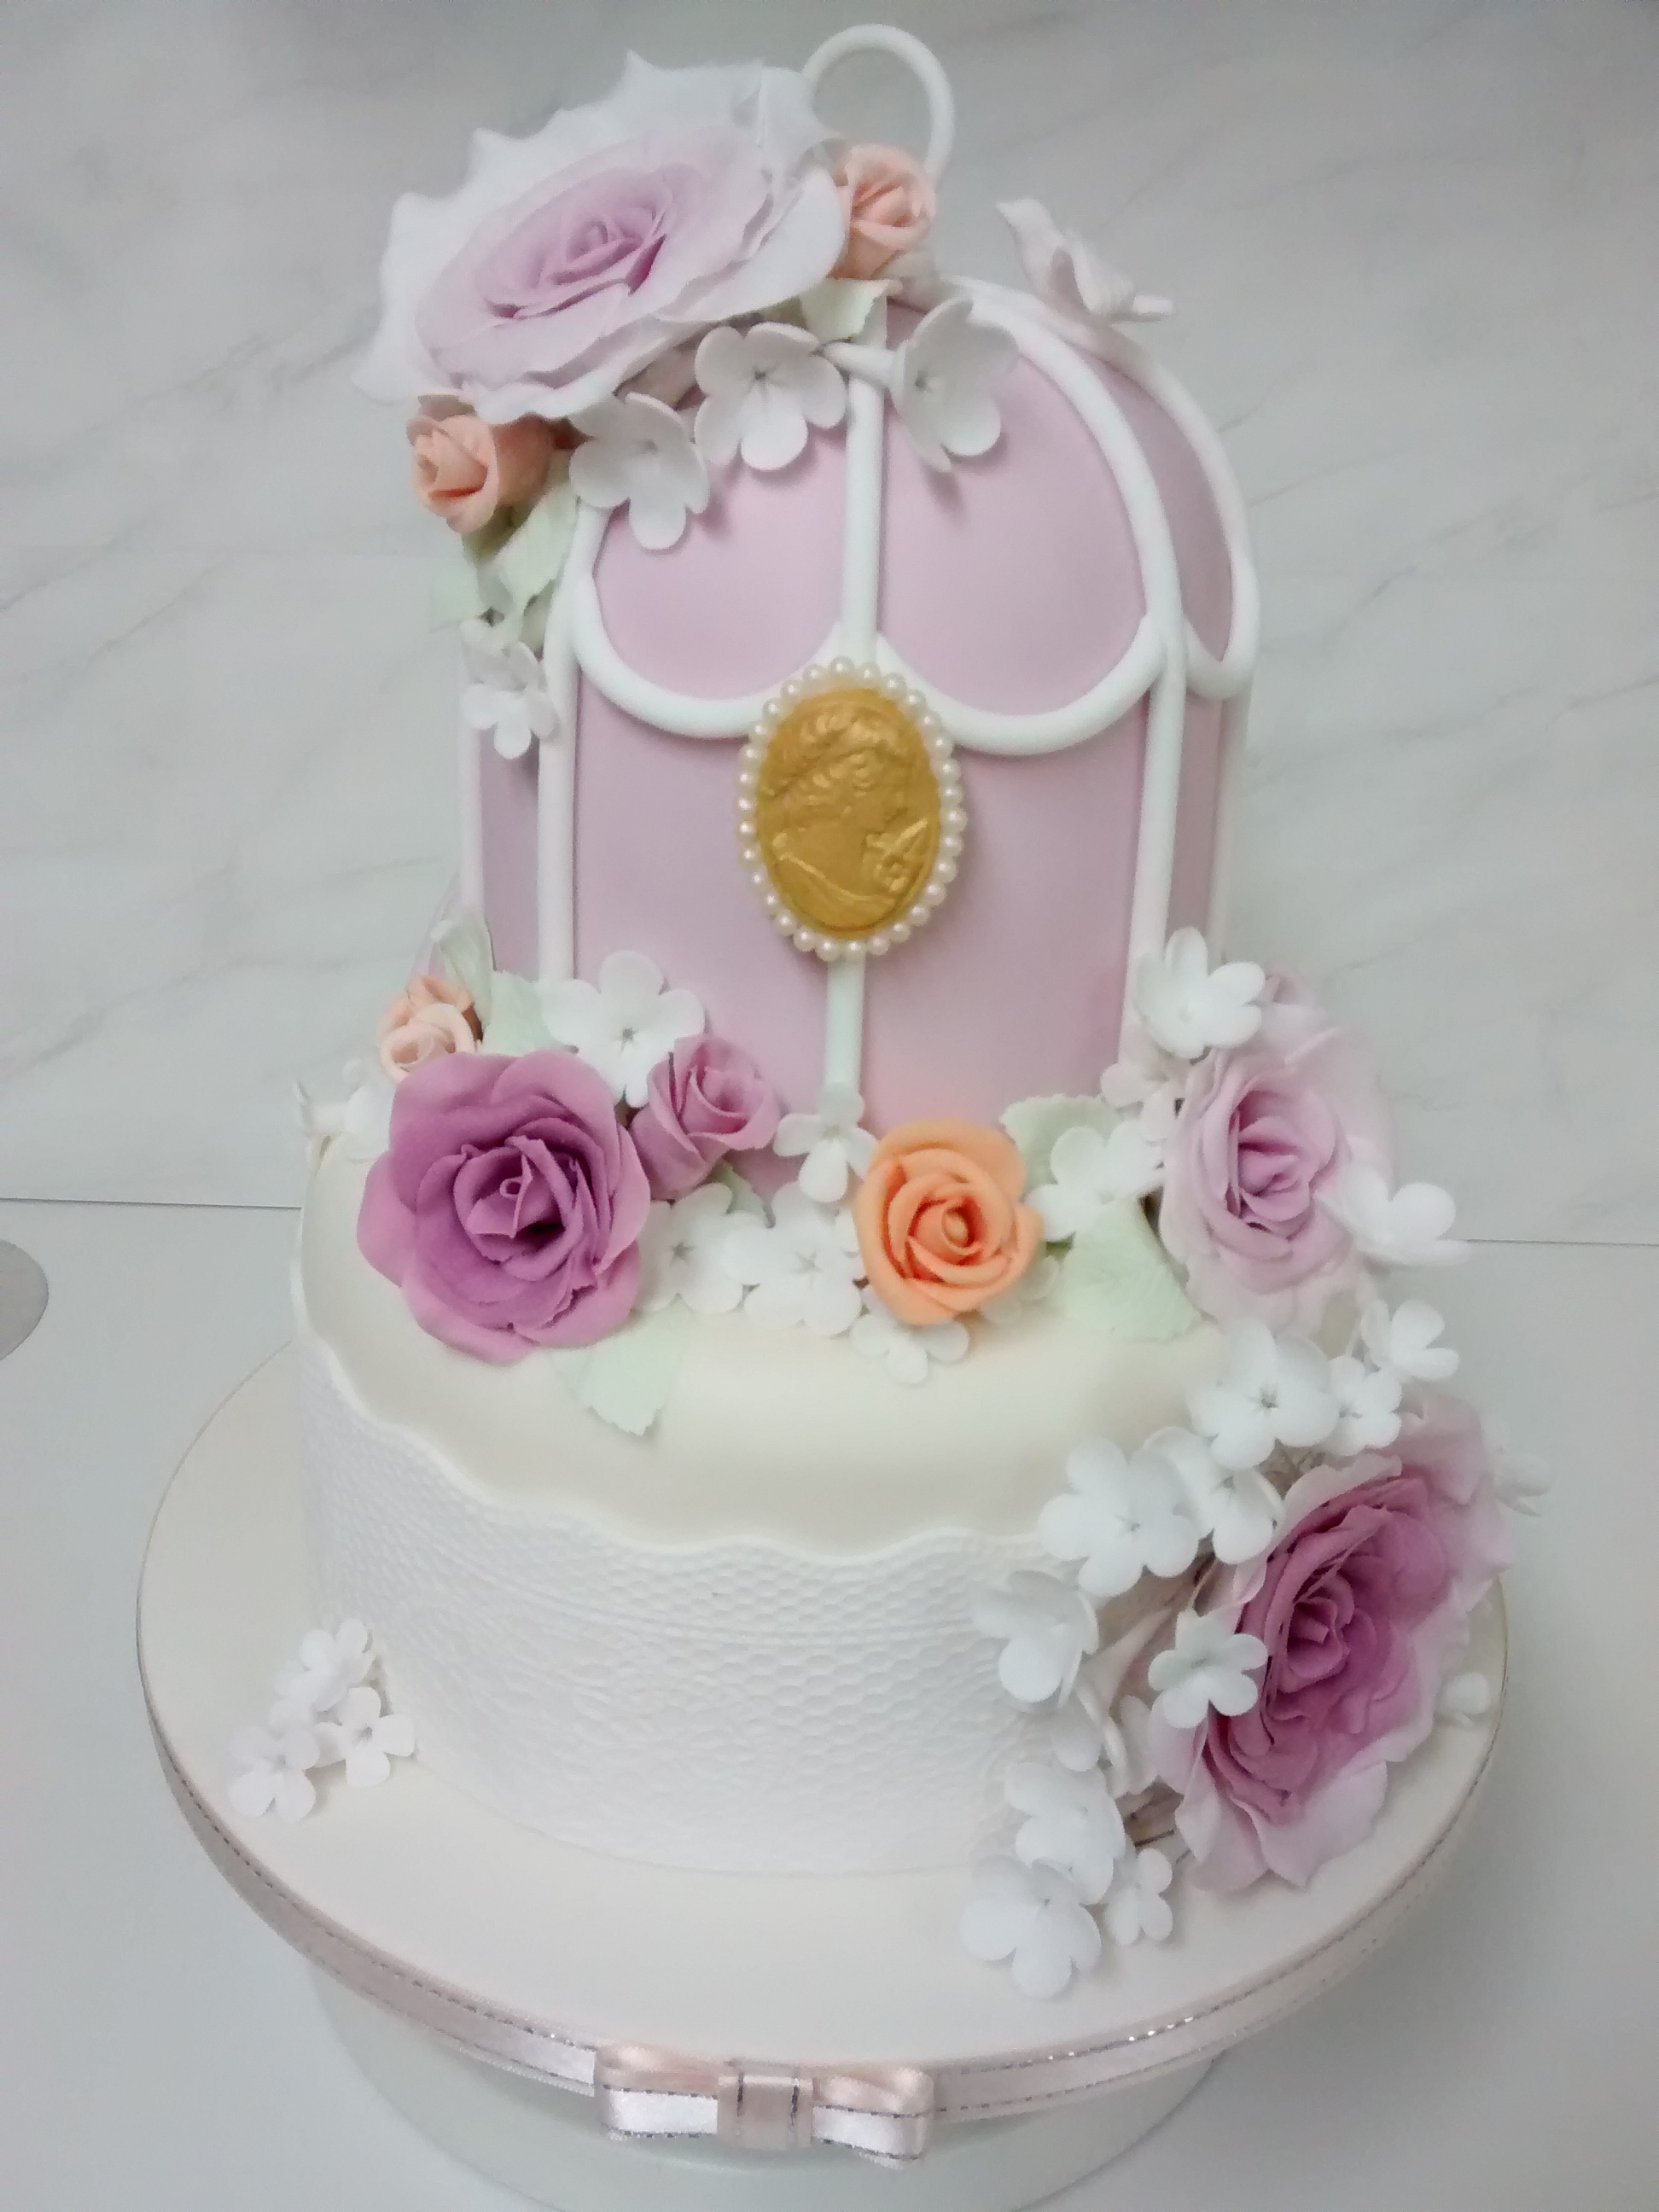 wedding cake bridgend wedding cakes south wales wedding cake designer bridgend 22093